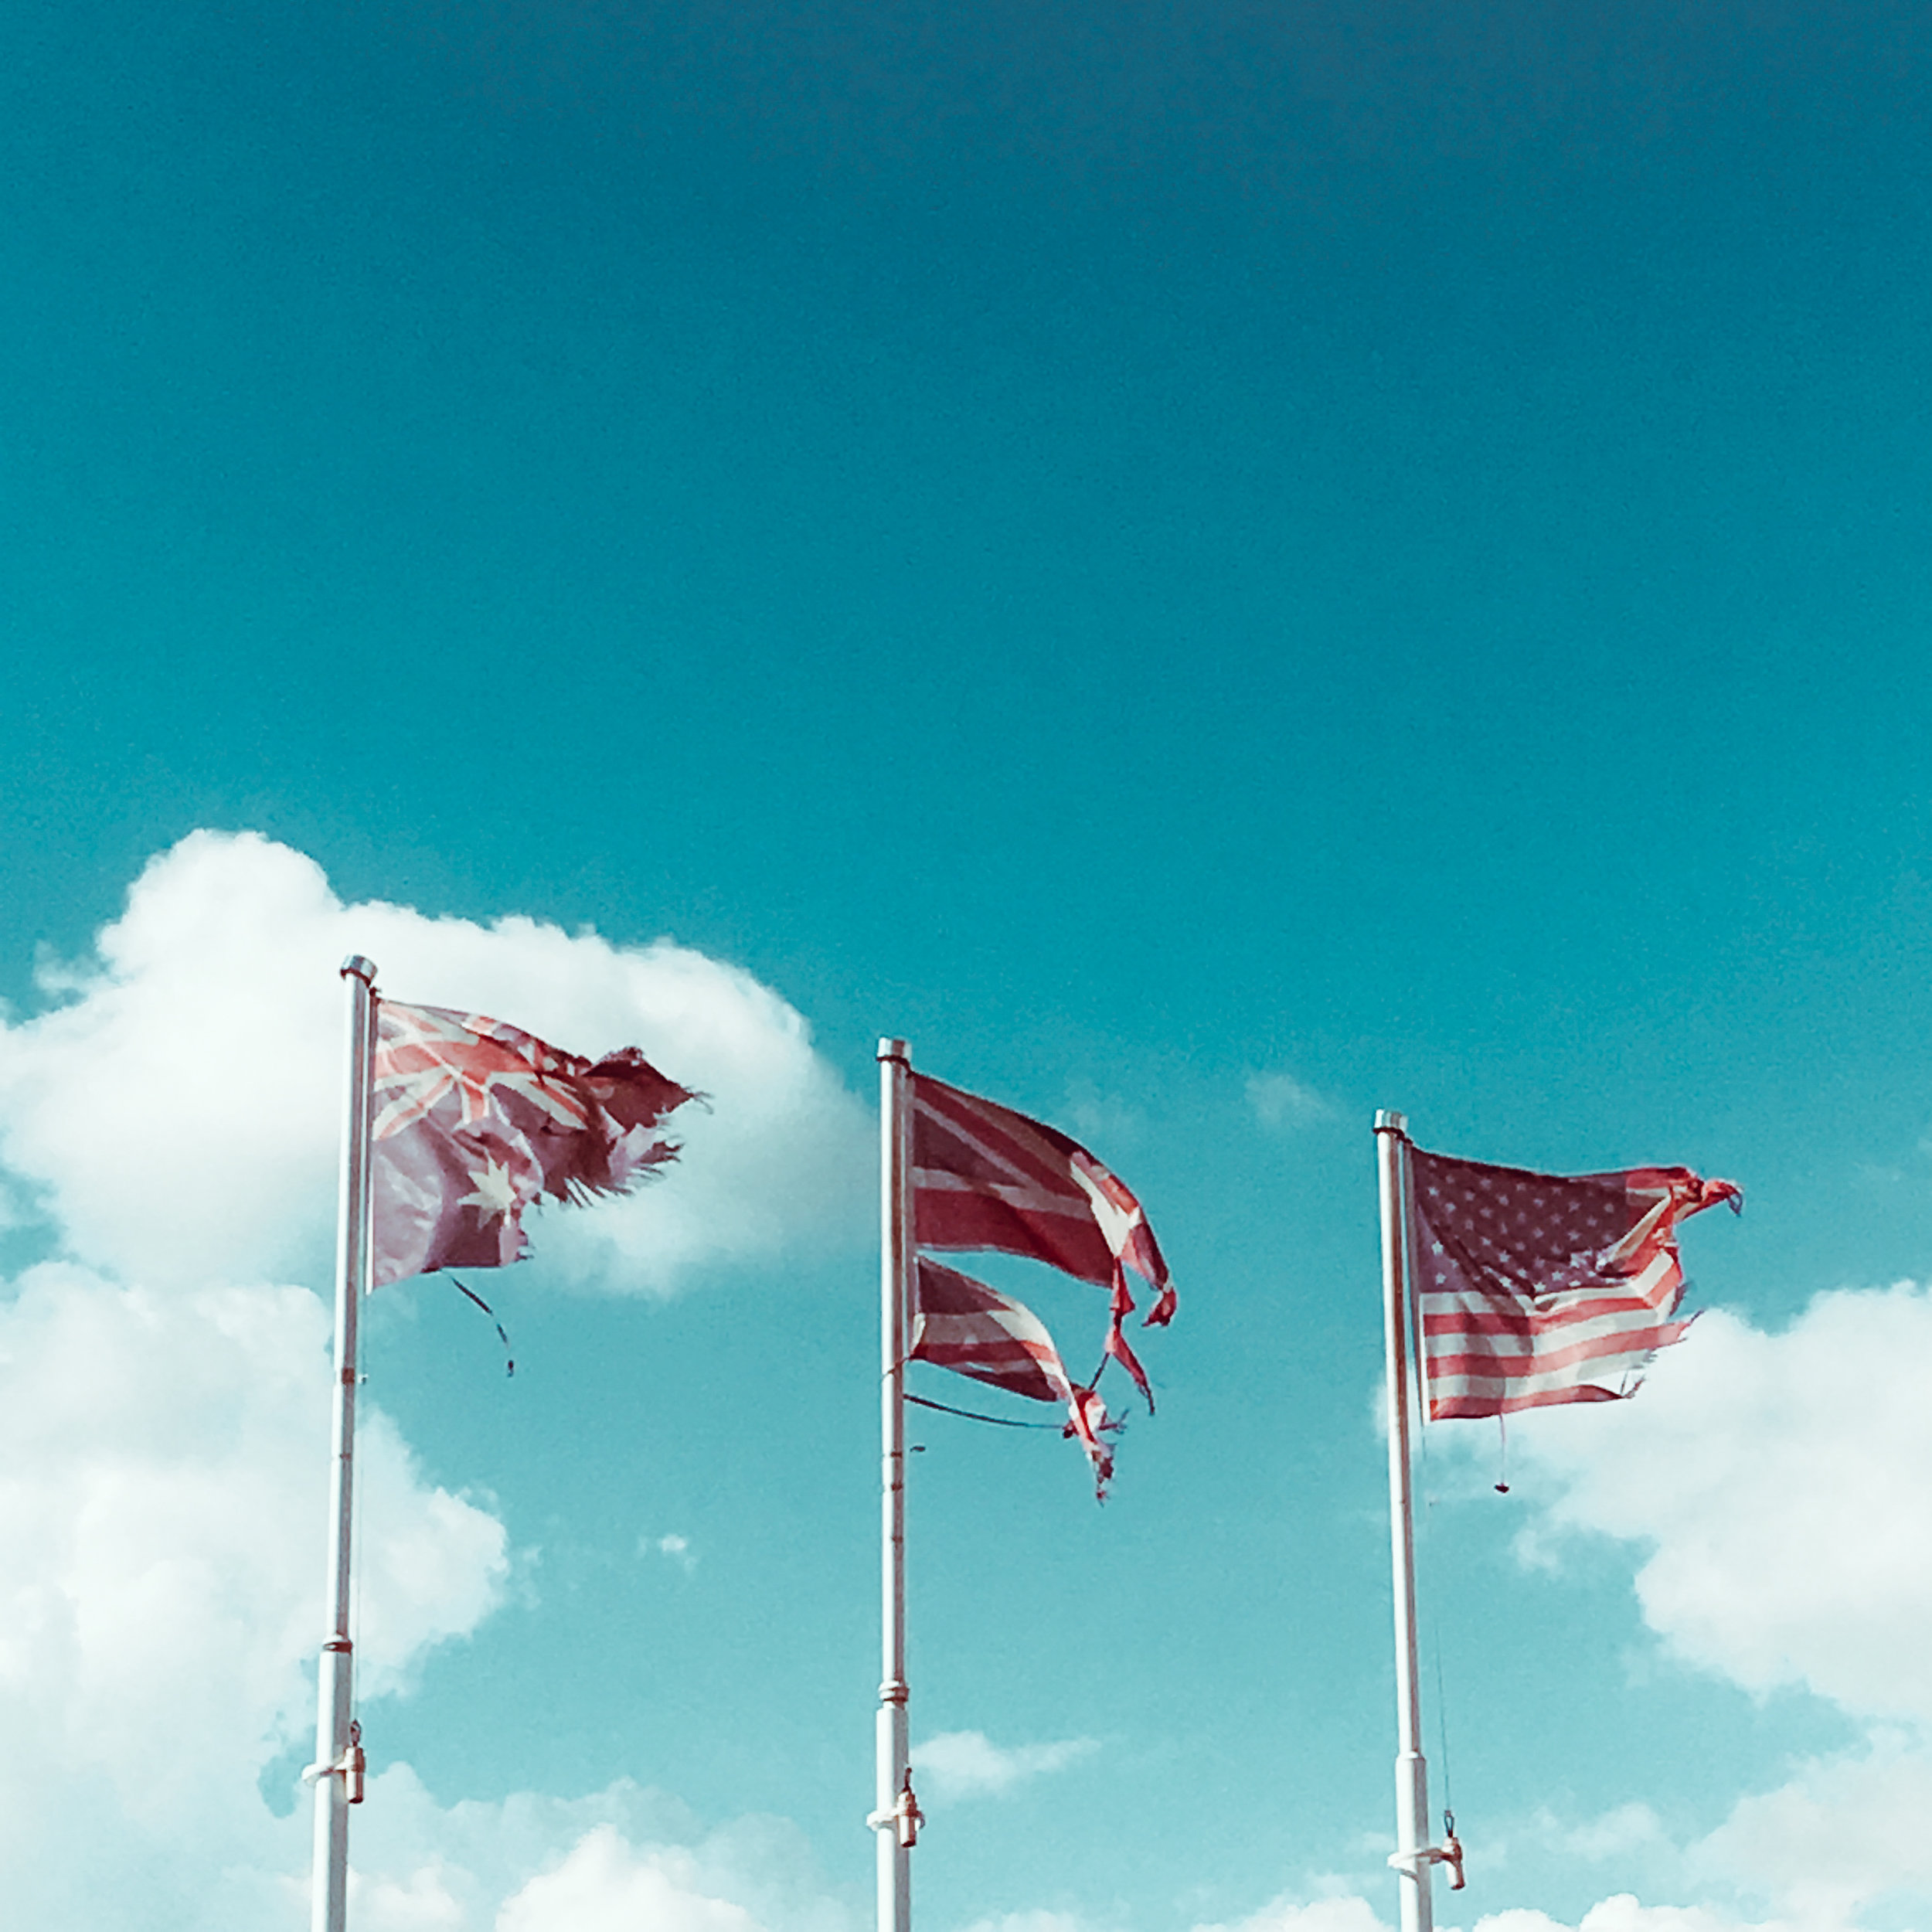 3 flags